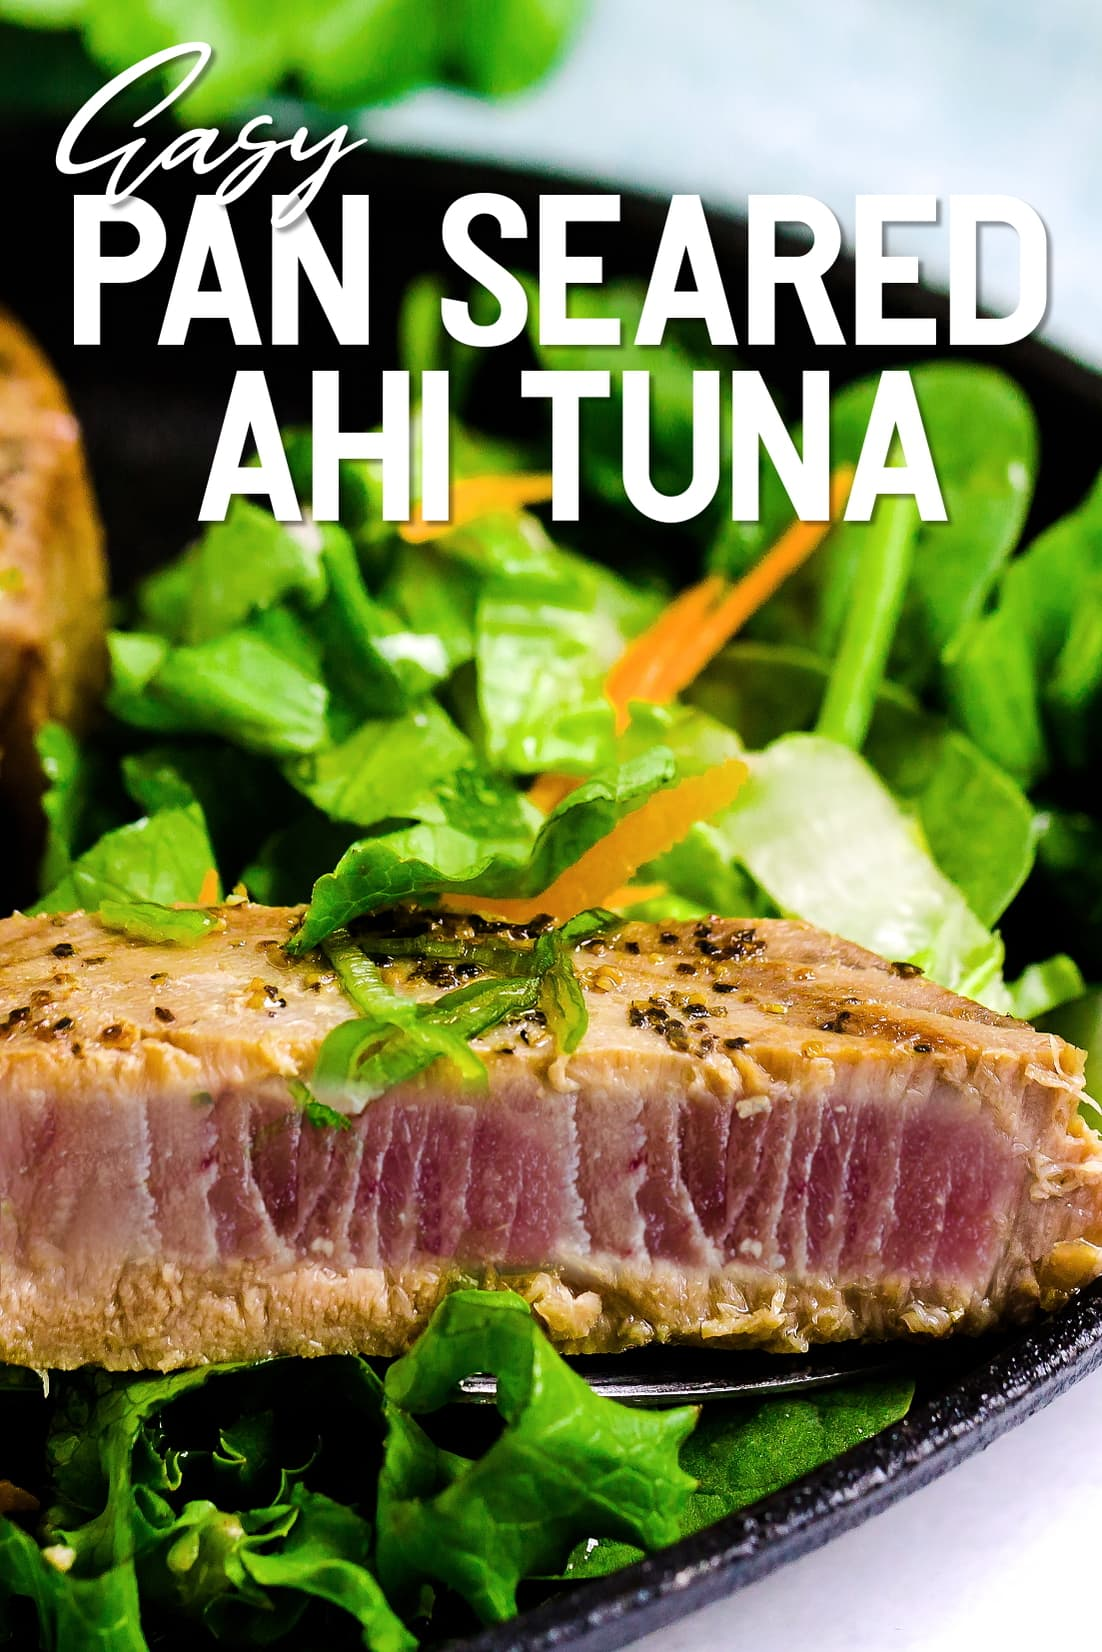 Pan Seared Ahi Tuna cut in half served on a bed of lettuce